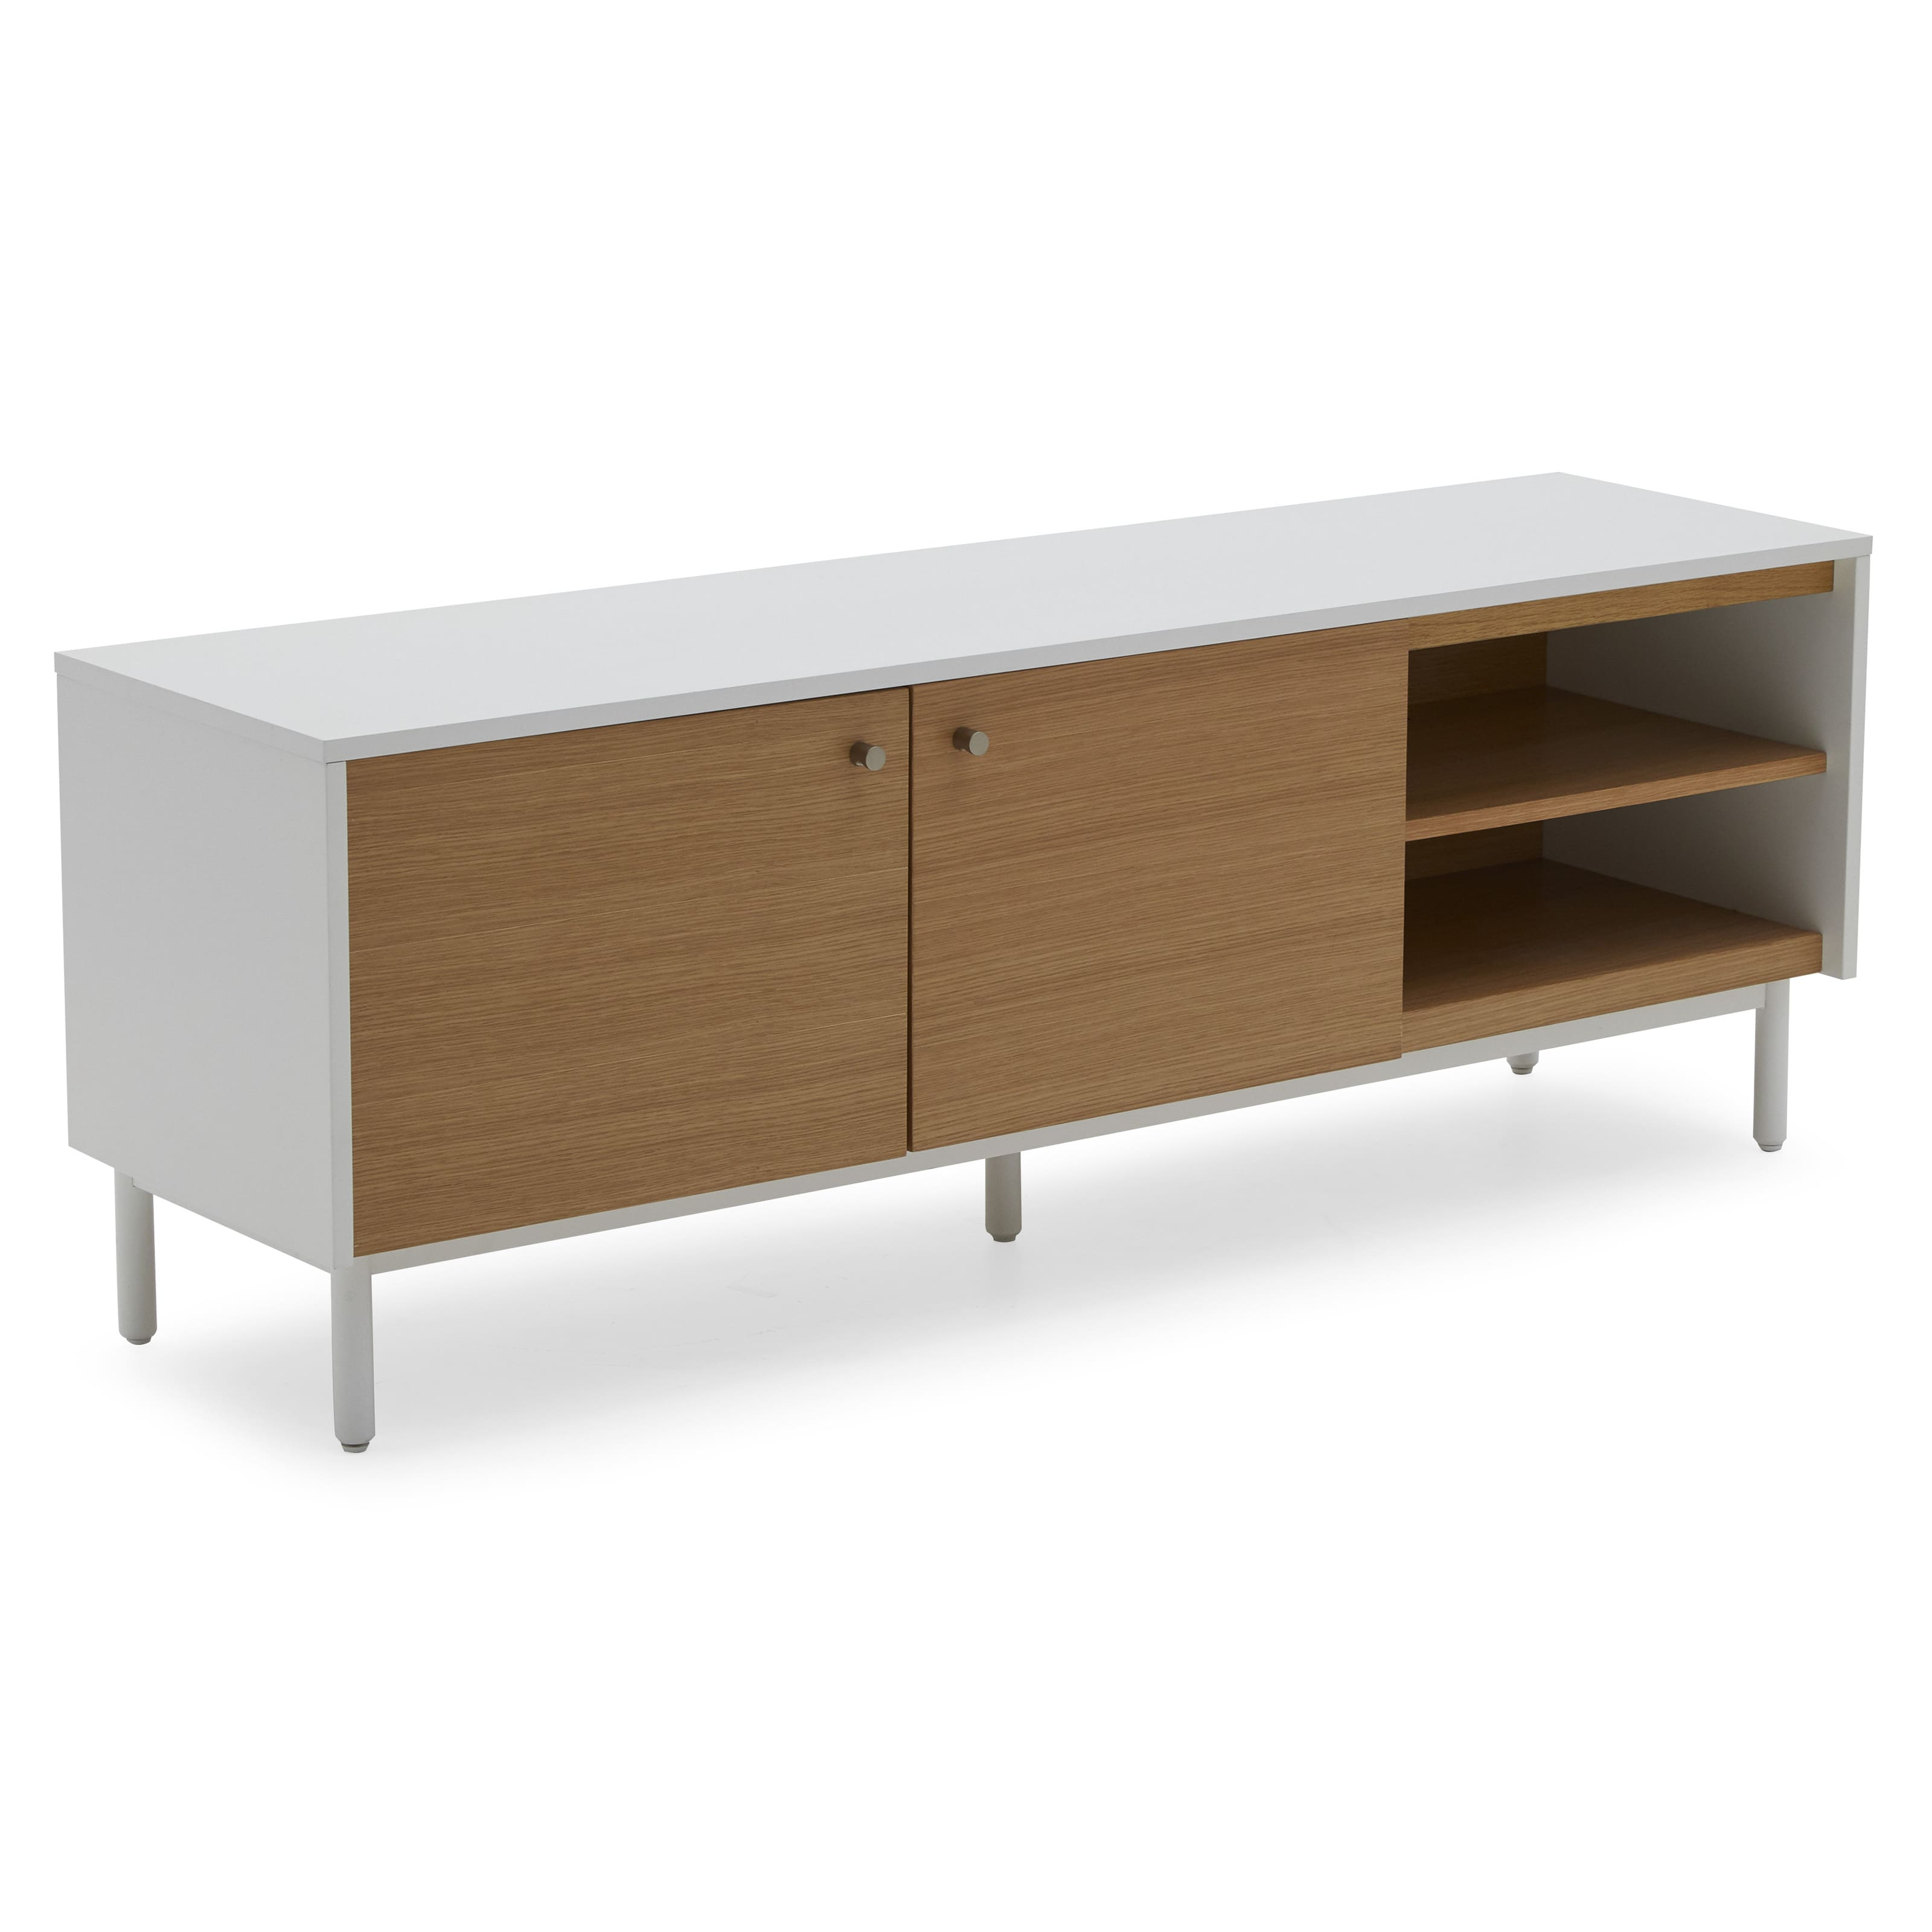 "Scandinavian Finna Low Profile TV Stand for TVs Up to 60"" $63.61"